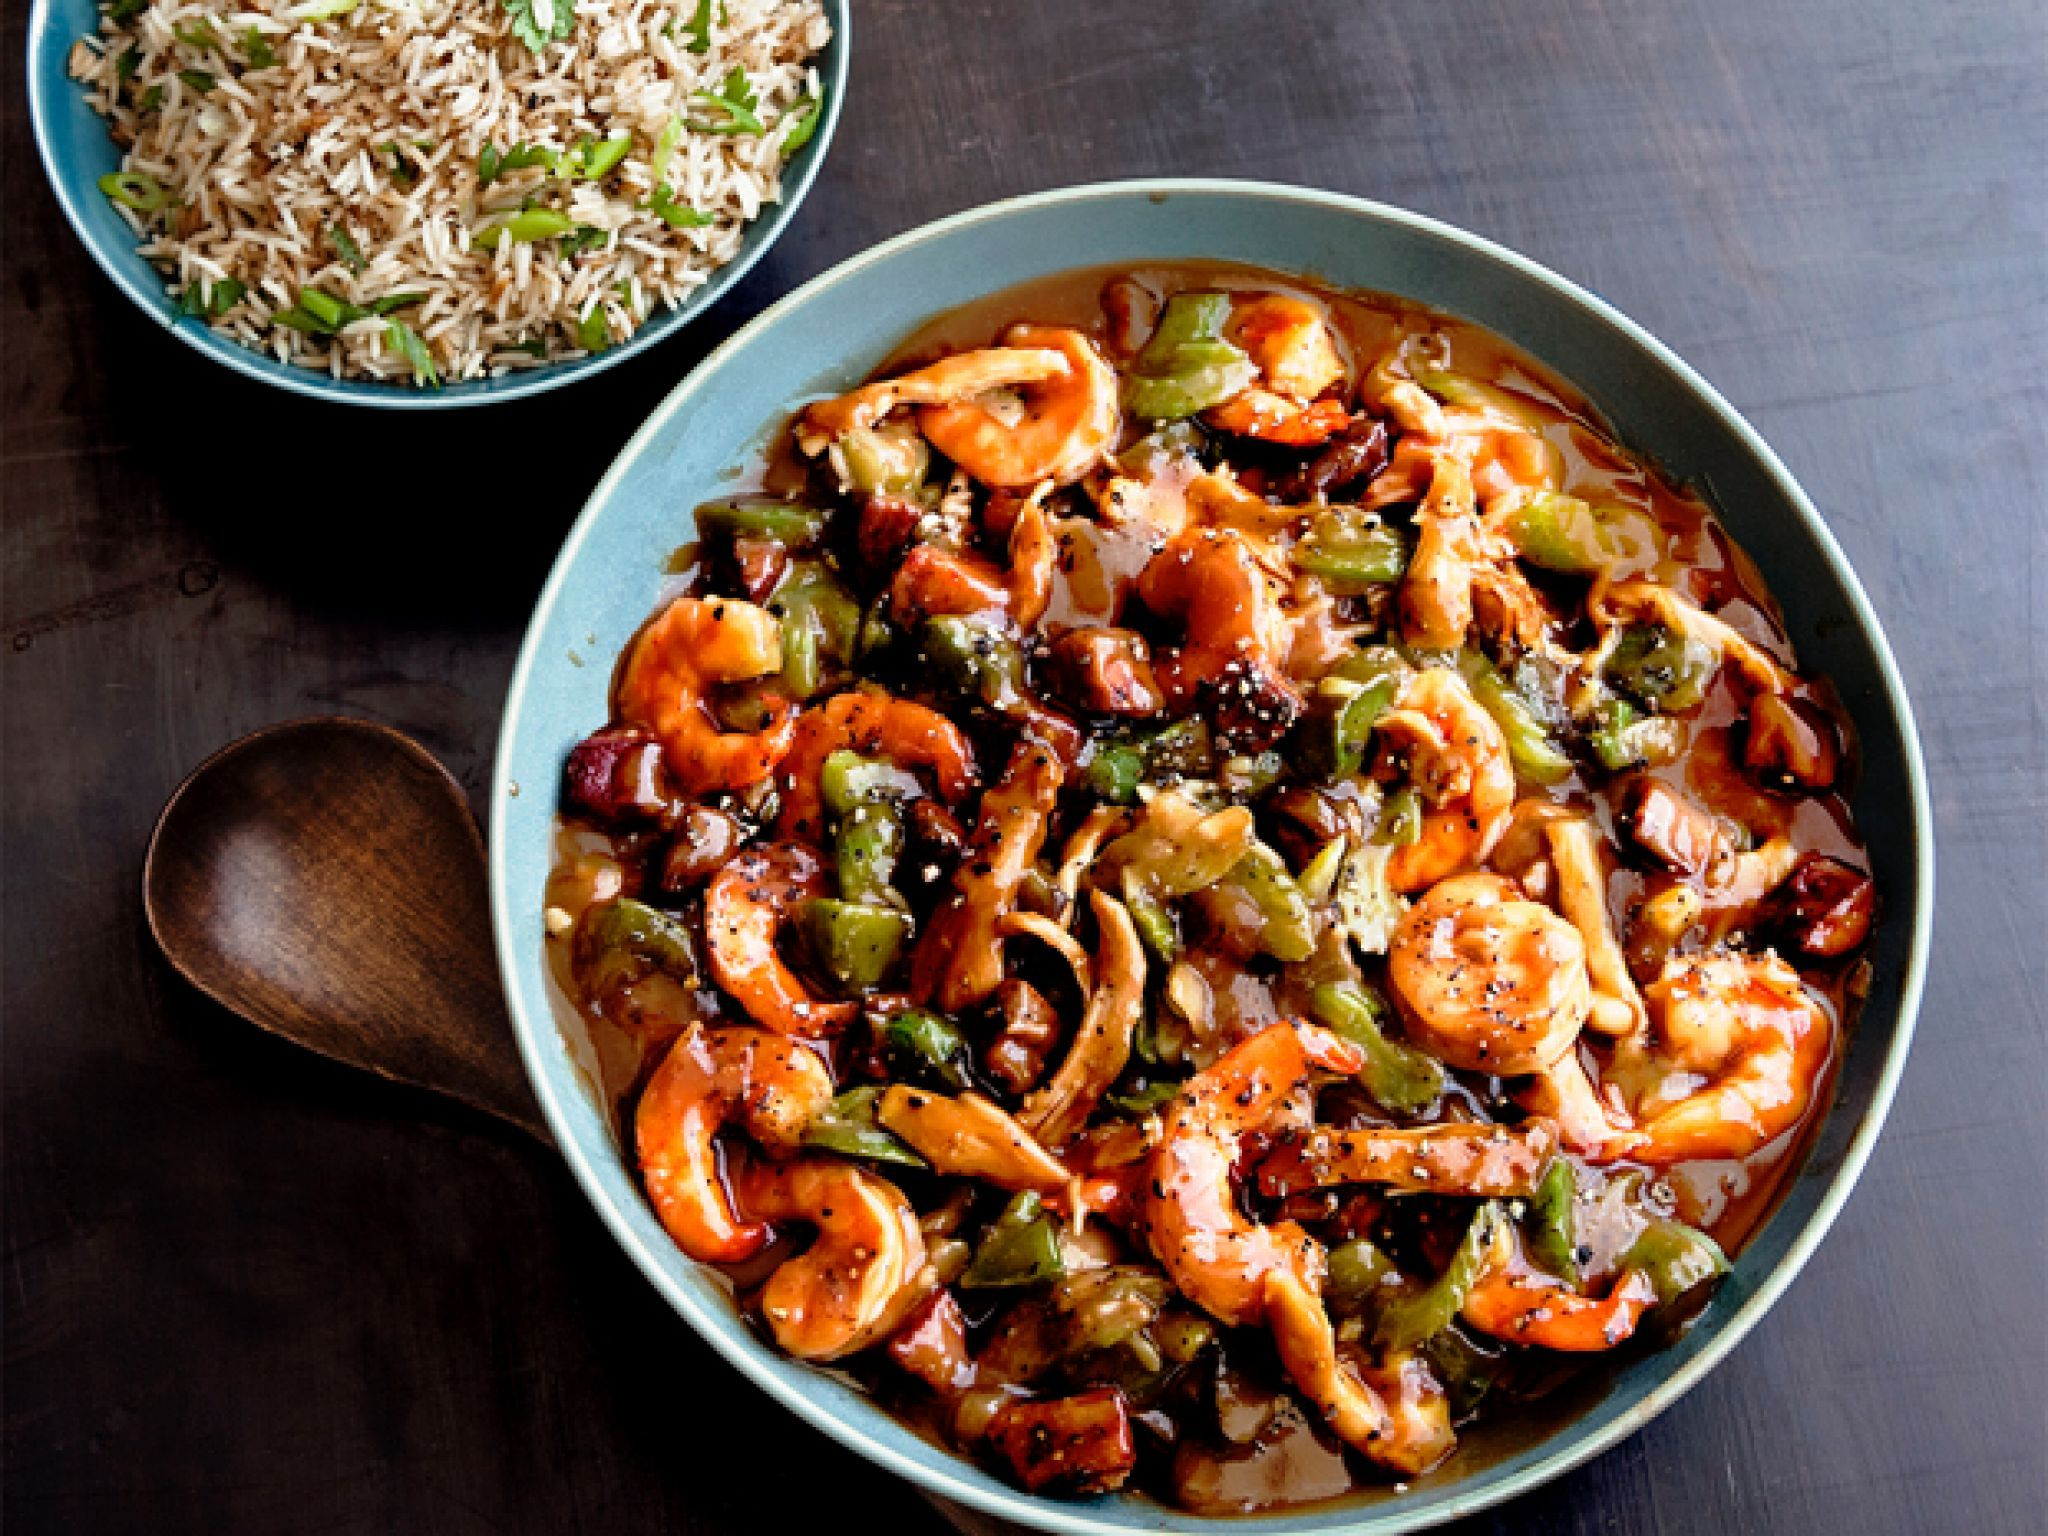 Shrimp and chicken etouffee recipe gimme that protein get this all star easy to follow shrimp and chicken etouffee recipe from food network kitchen forumfinder Gallery